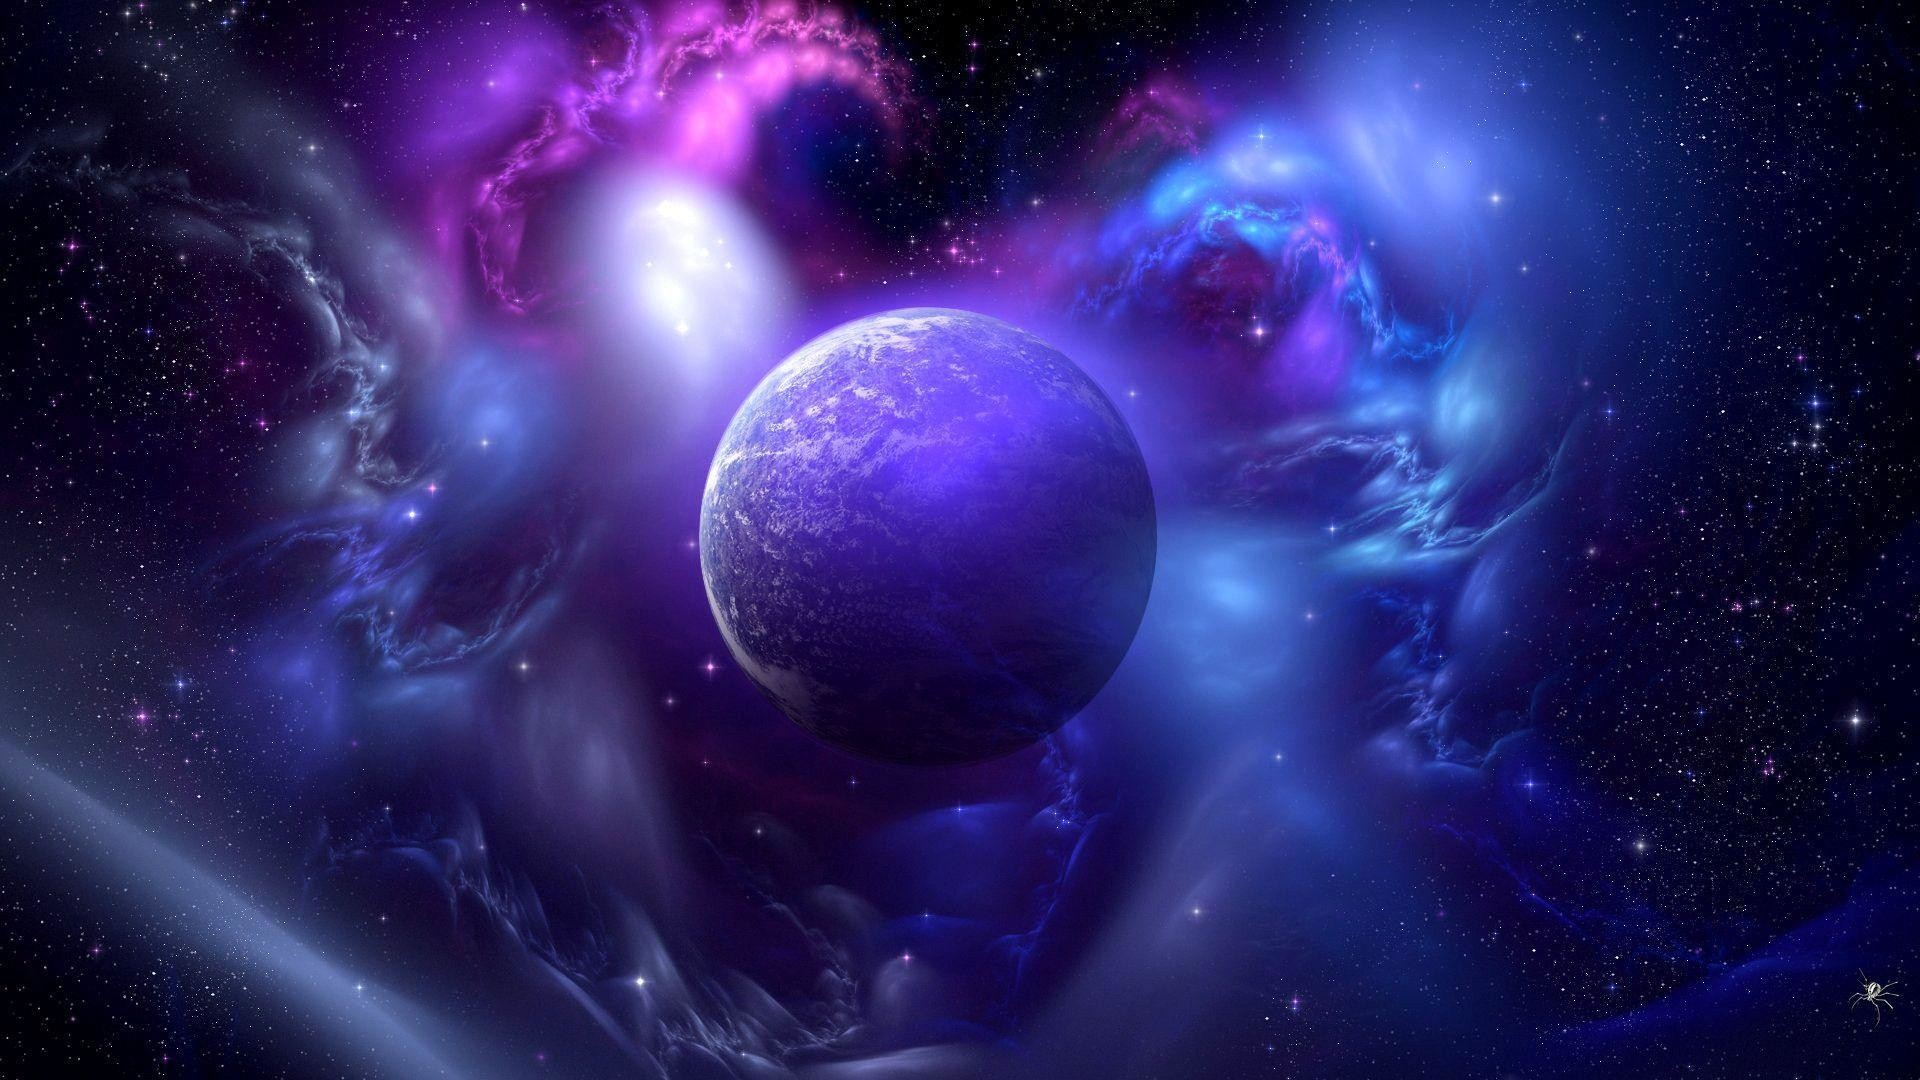 Hd Real Space Wallpapers 1080P Background 1 HD Wallpapers | lzamgs.